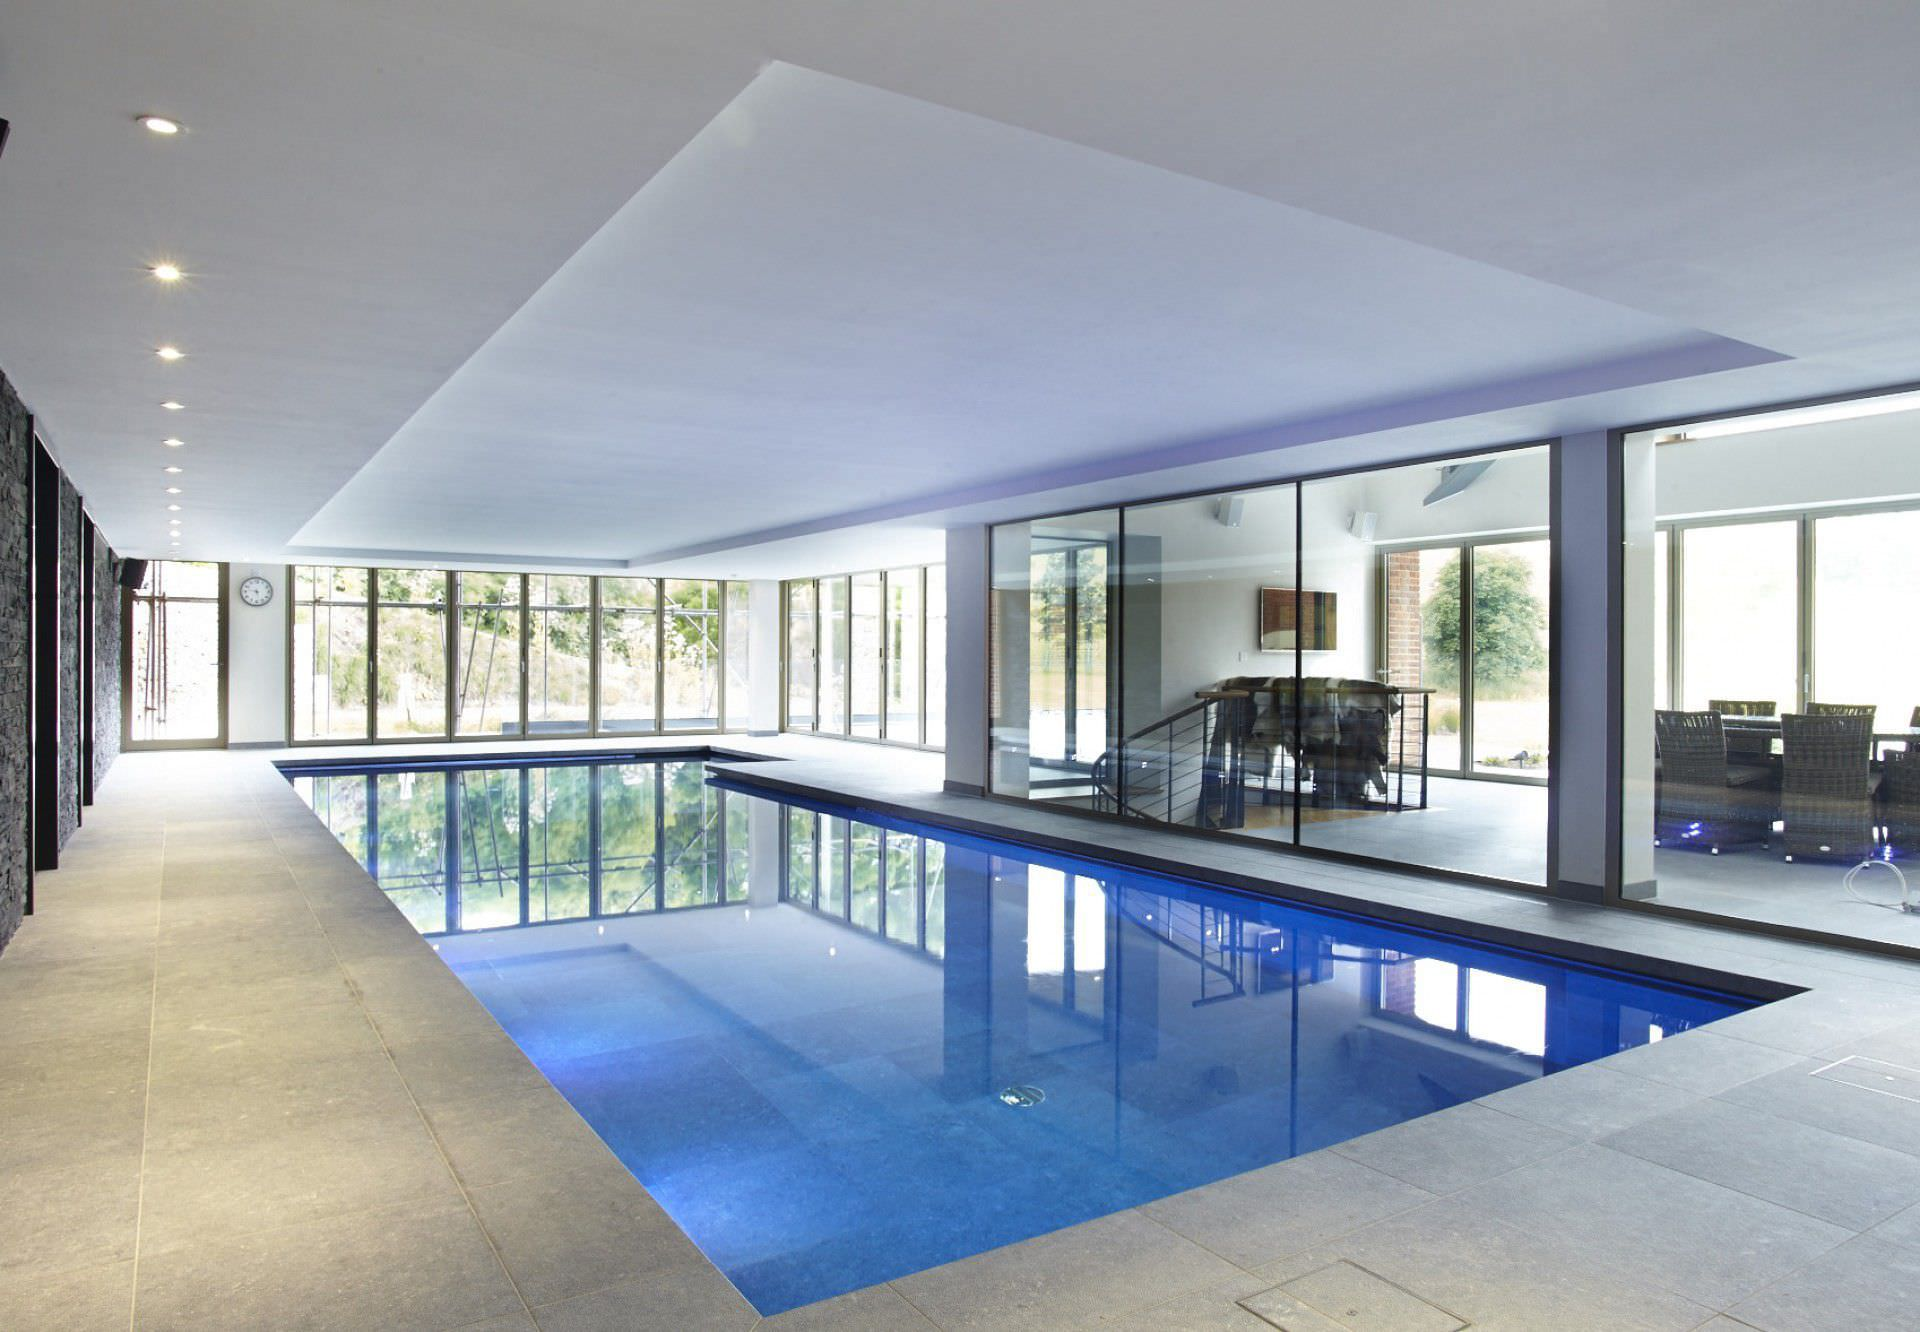 Private indoor pool  In-ground swimming pool / ceramic / indoor - BUCKINGHAMSHIRE ...